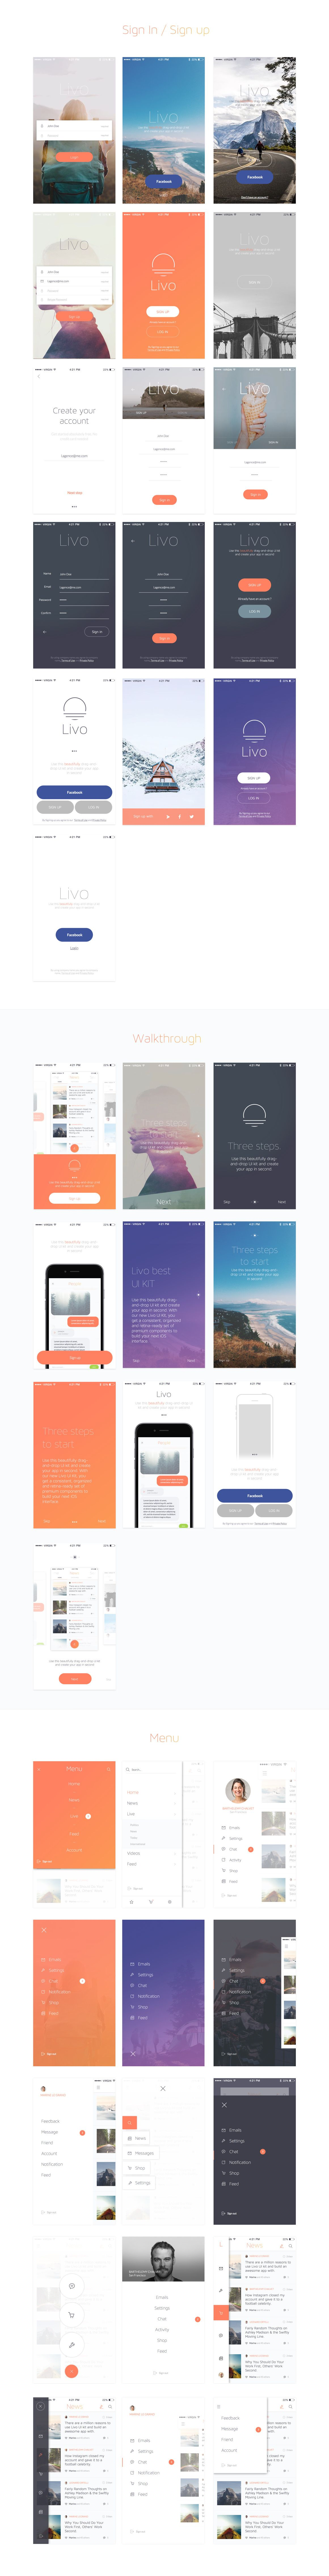 Livo UI Kit - Sketch Templates | ThemeForest (splash, login, how it ...